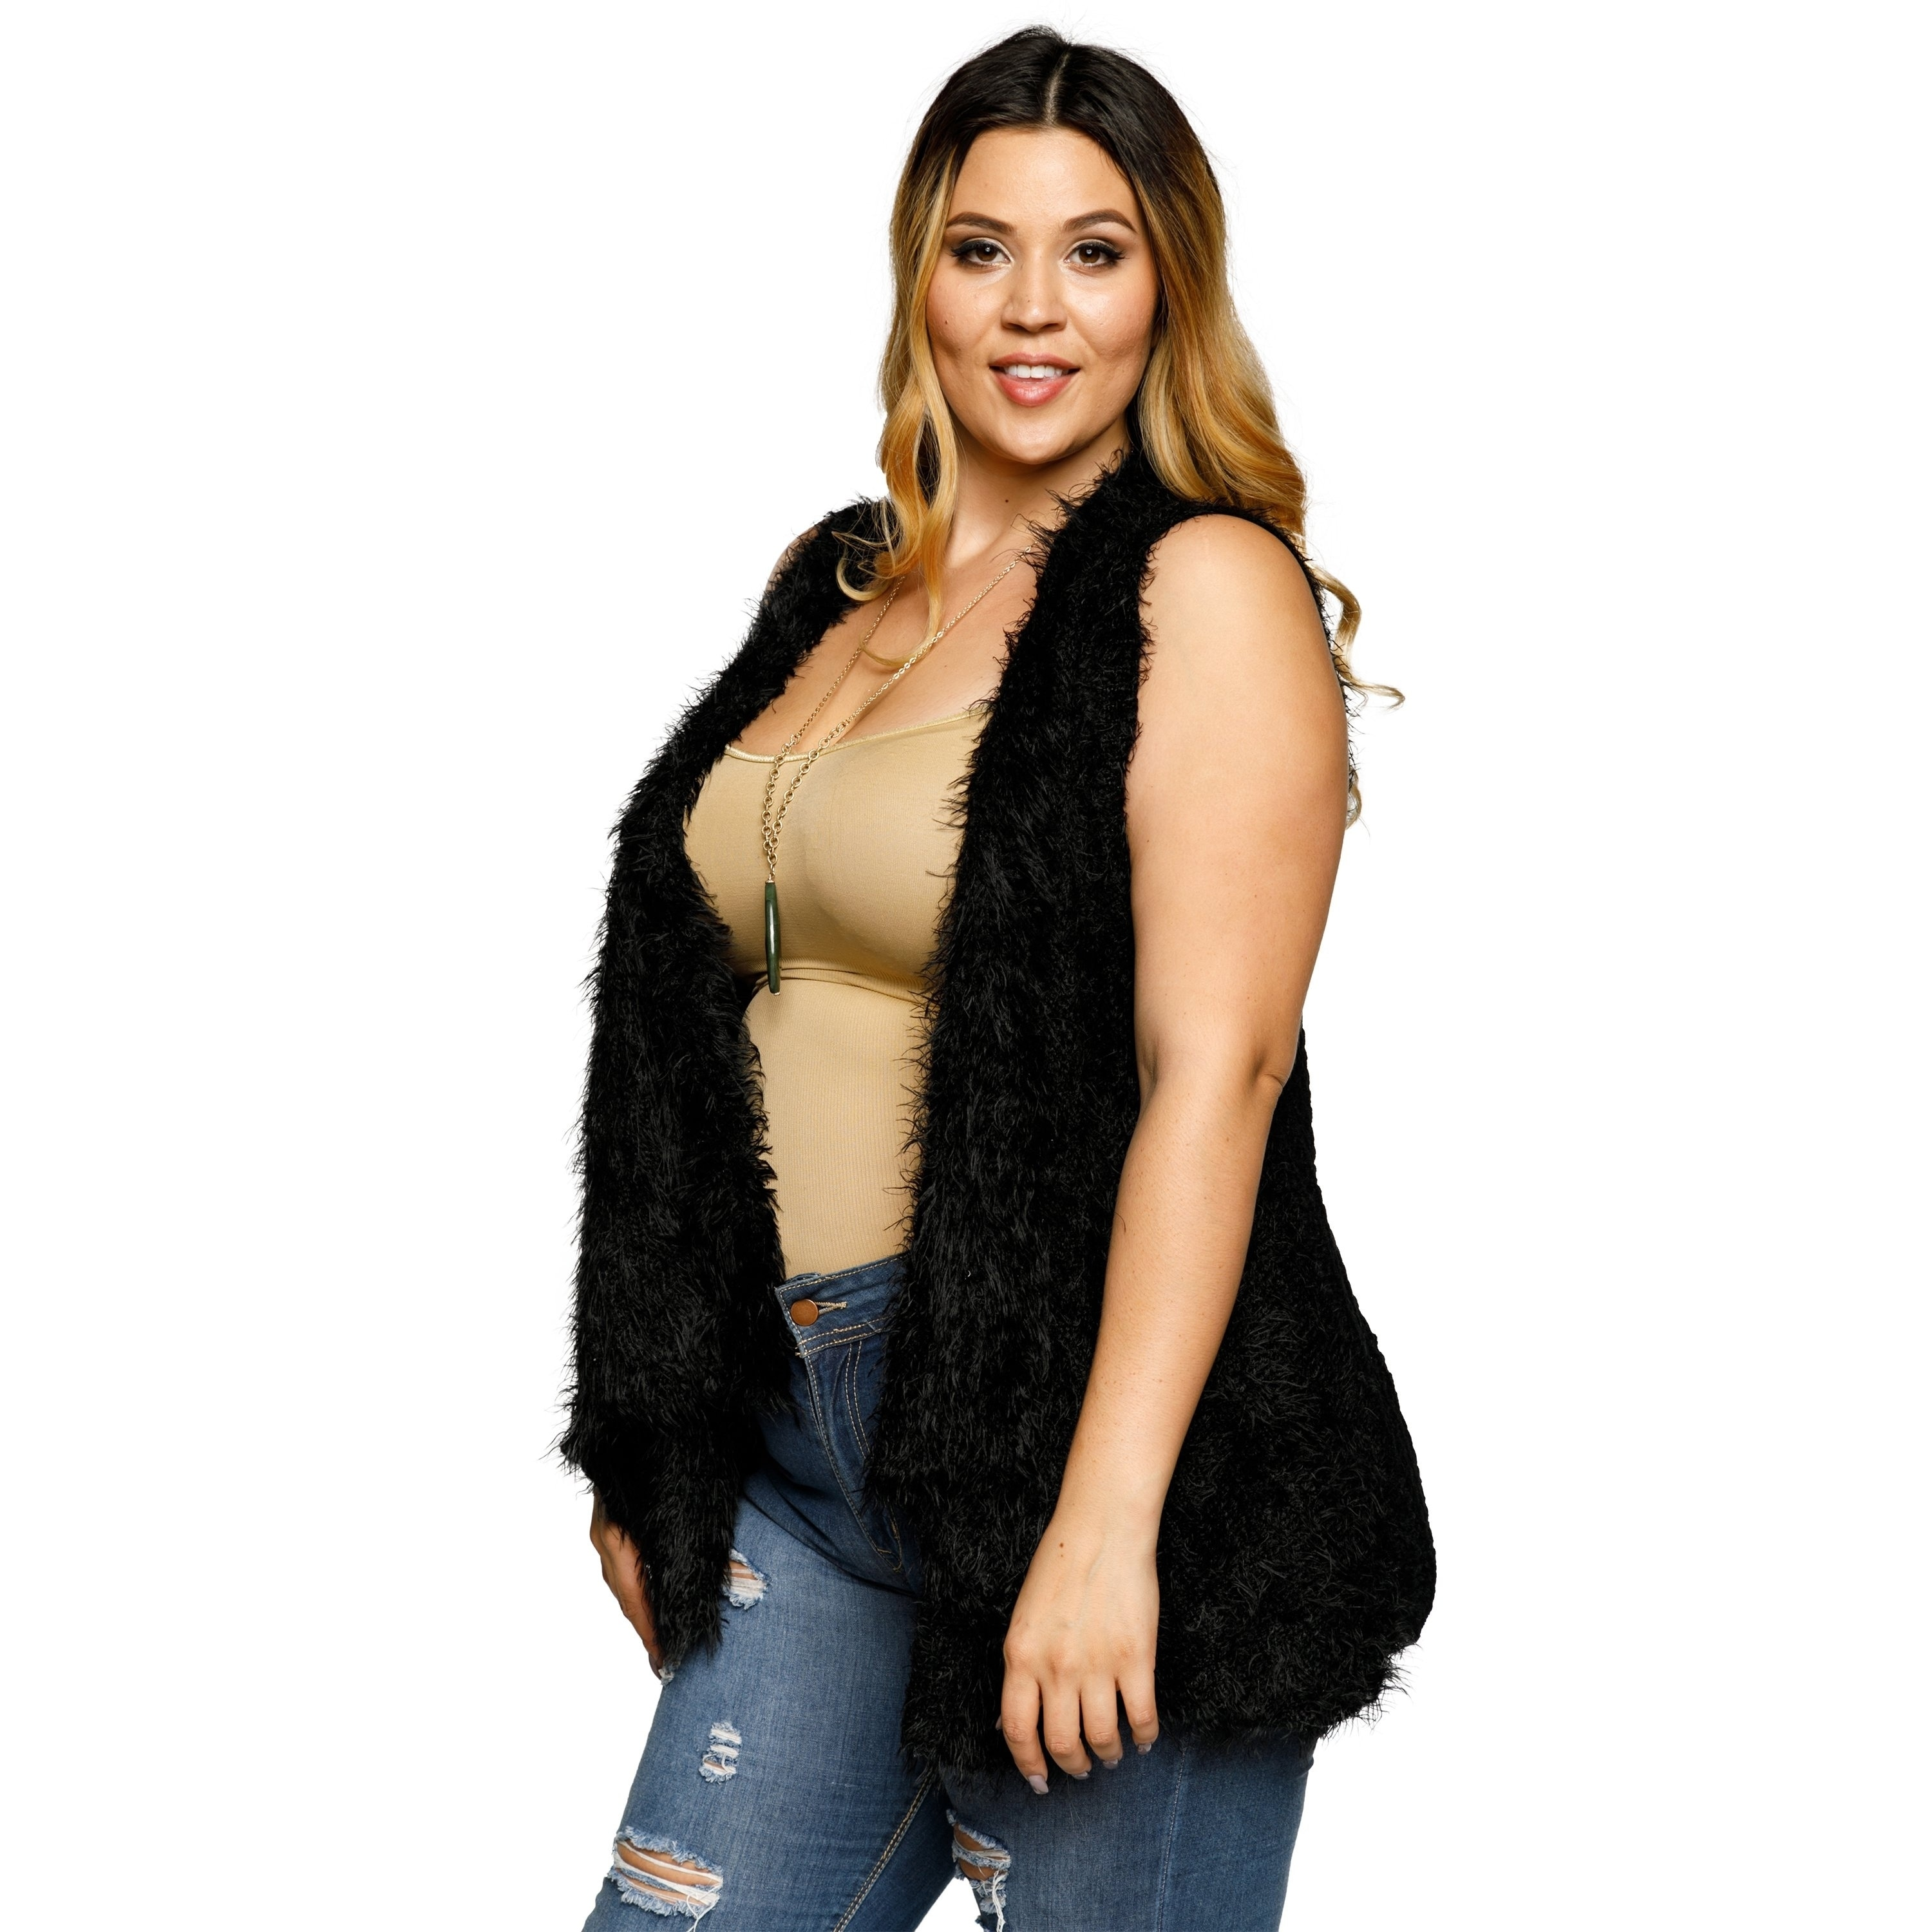 50a88b0630 Shop Xehar Womens Plus Size Fuzzy Faux Fur Open Front Sweater Vest - Free  Shipping On Orders Over $45 - Overstock - 18793648